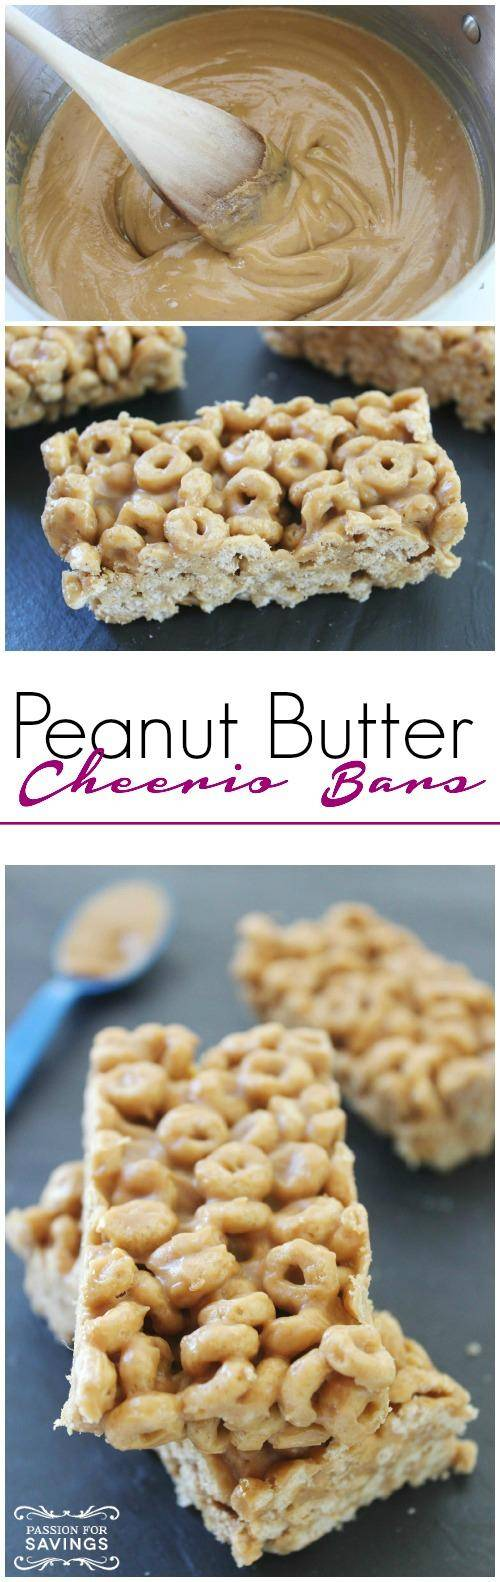 Peanut Butter Cheerio Bars Recipe